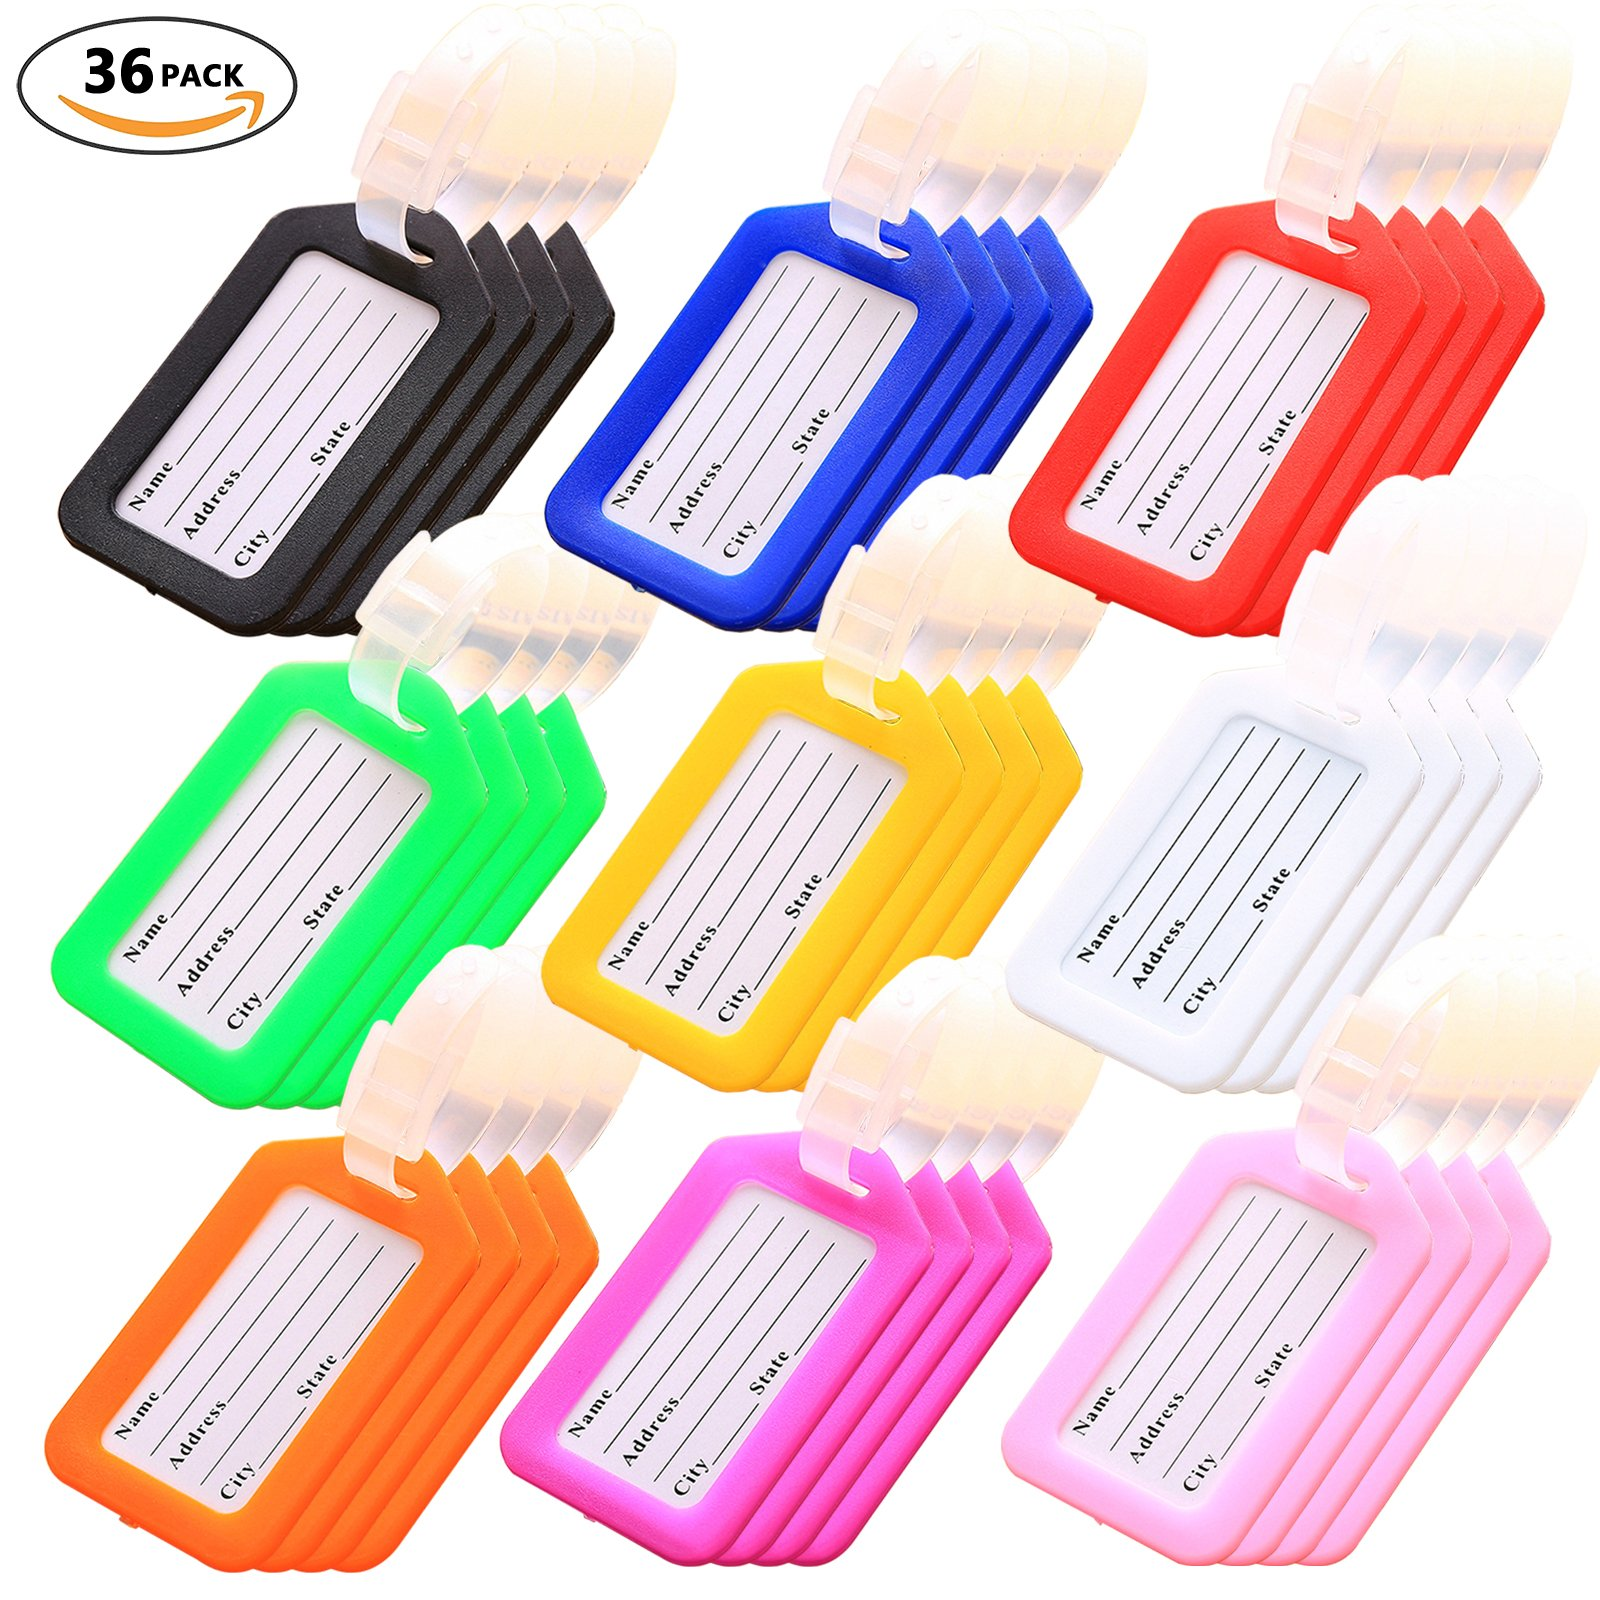 Key Tags, Identifiers Labels For Luggage Suitcases Bags, PVC Travel Baggage Tag Set 36 Pack